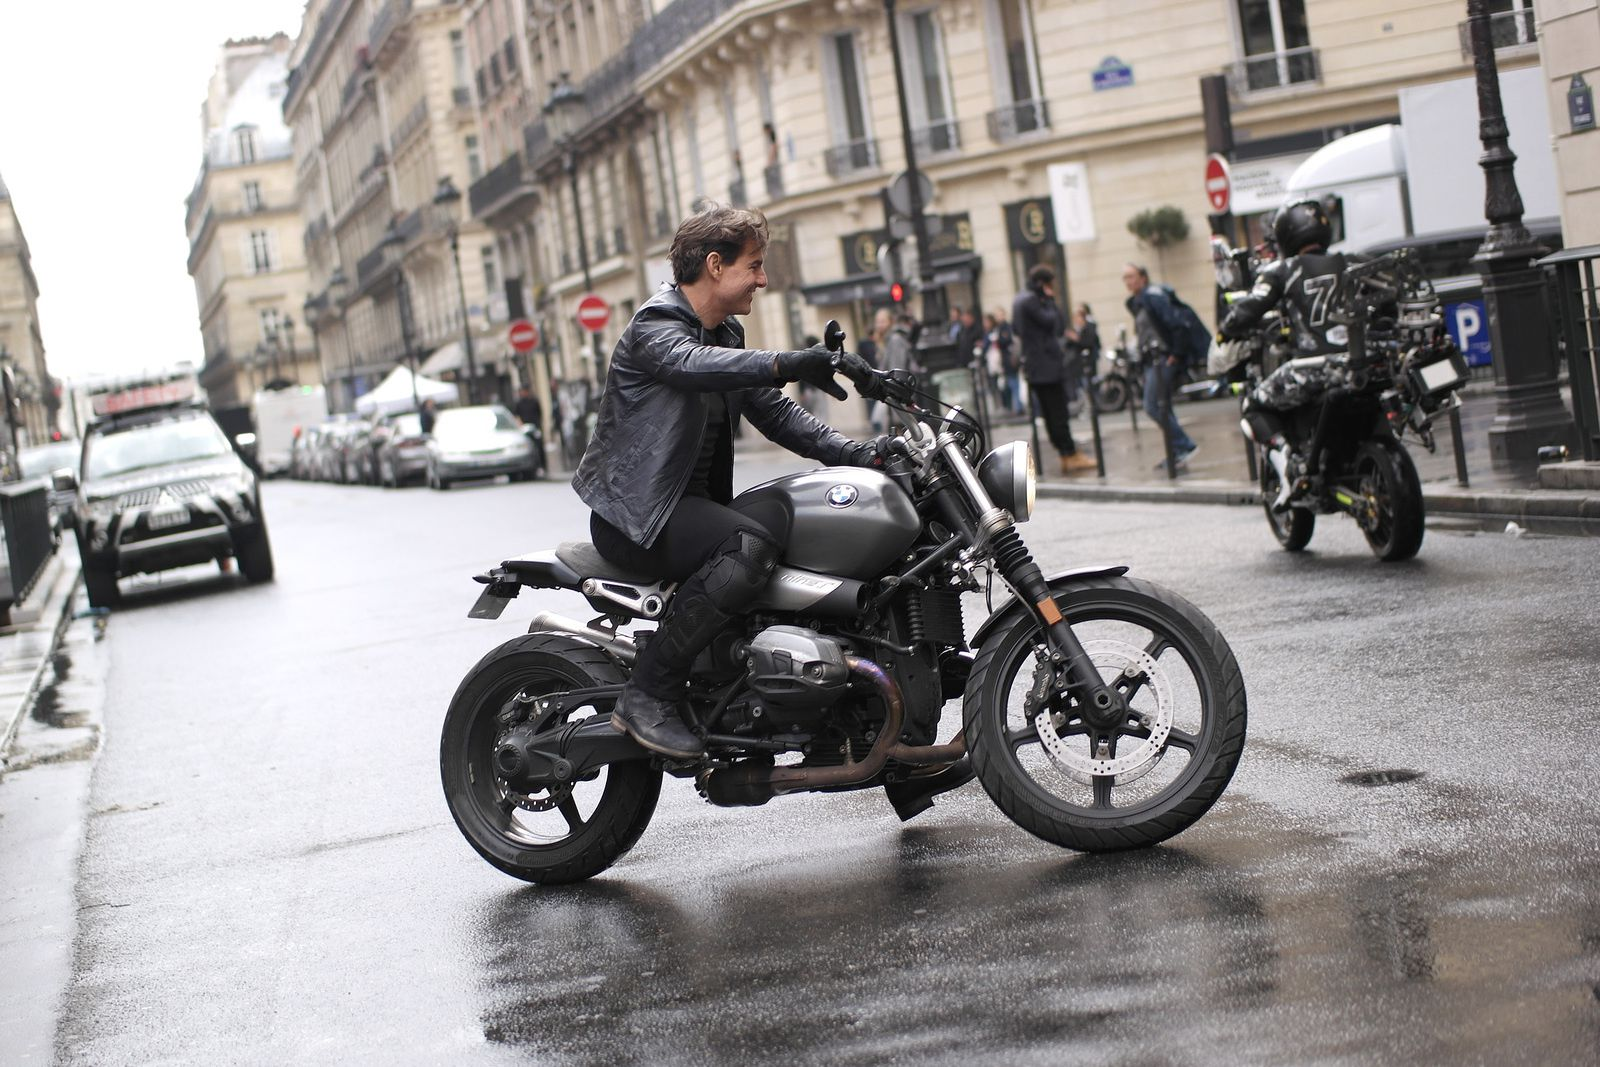 La moto camera film Tom Cruise